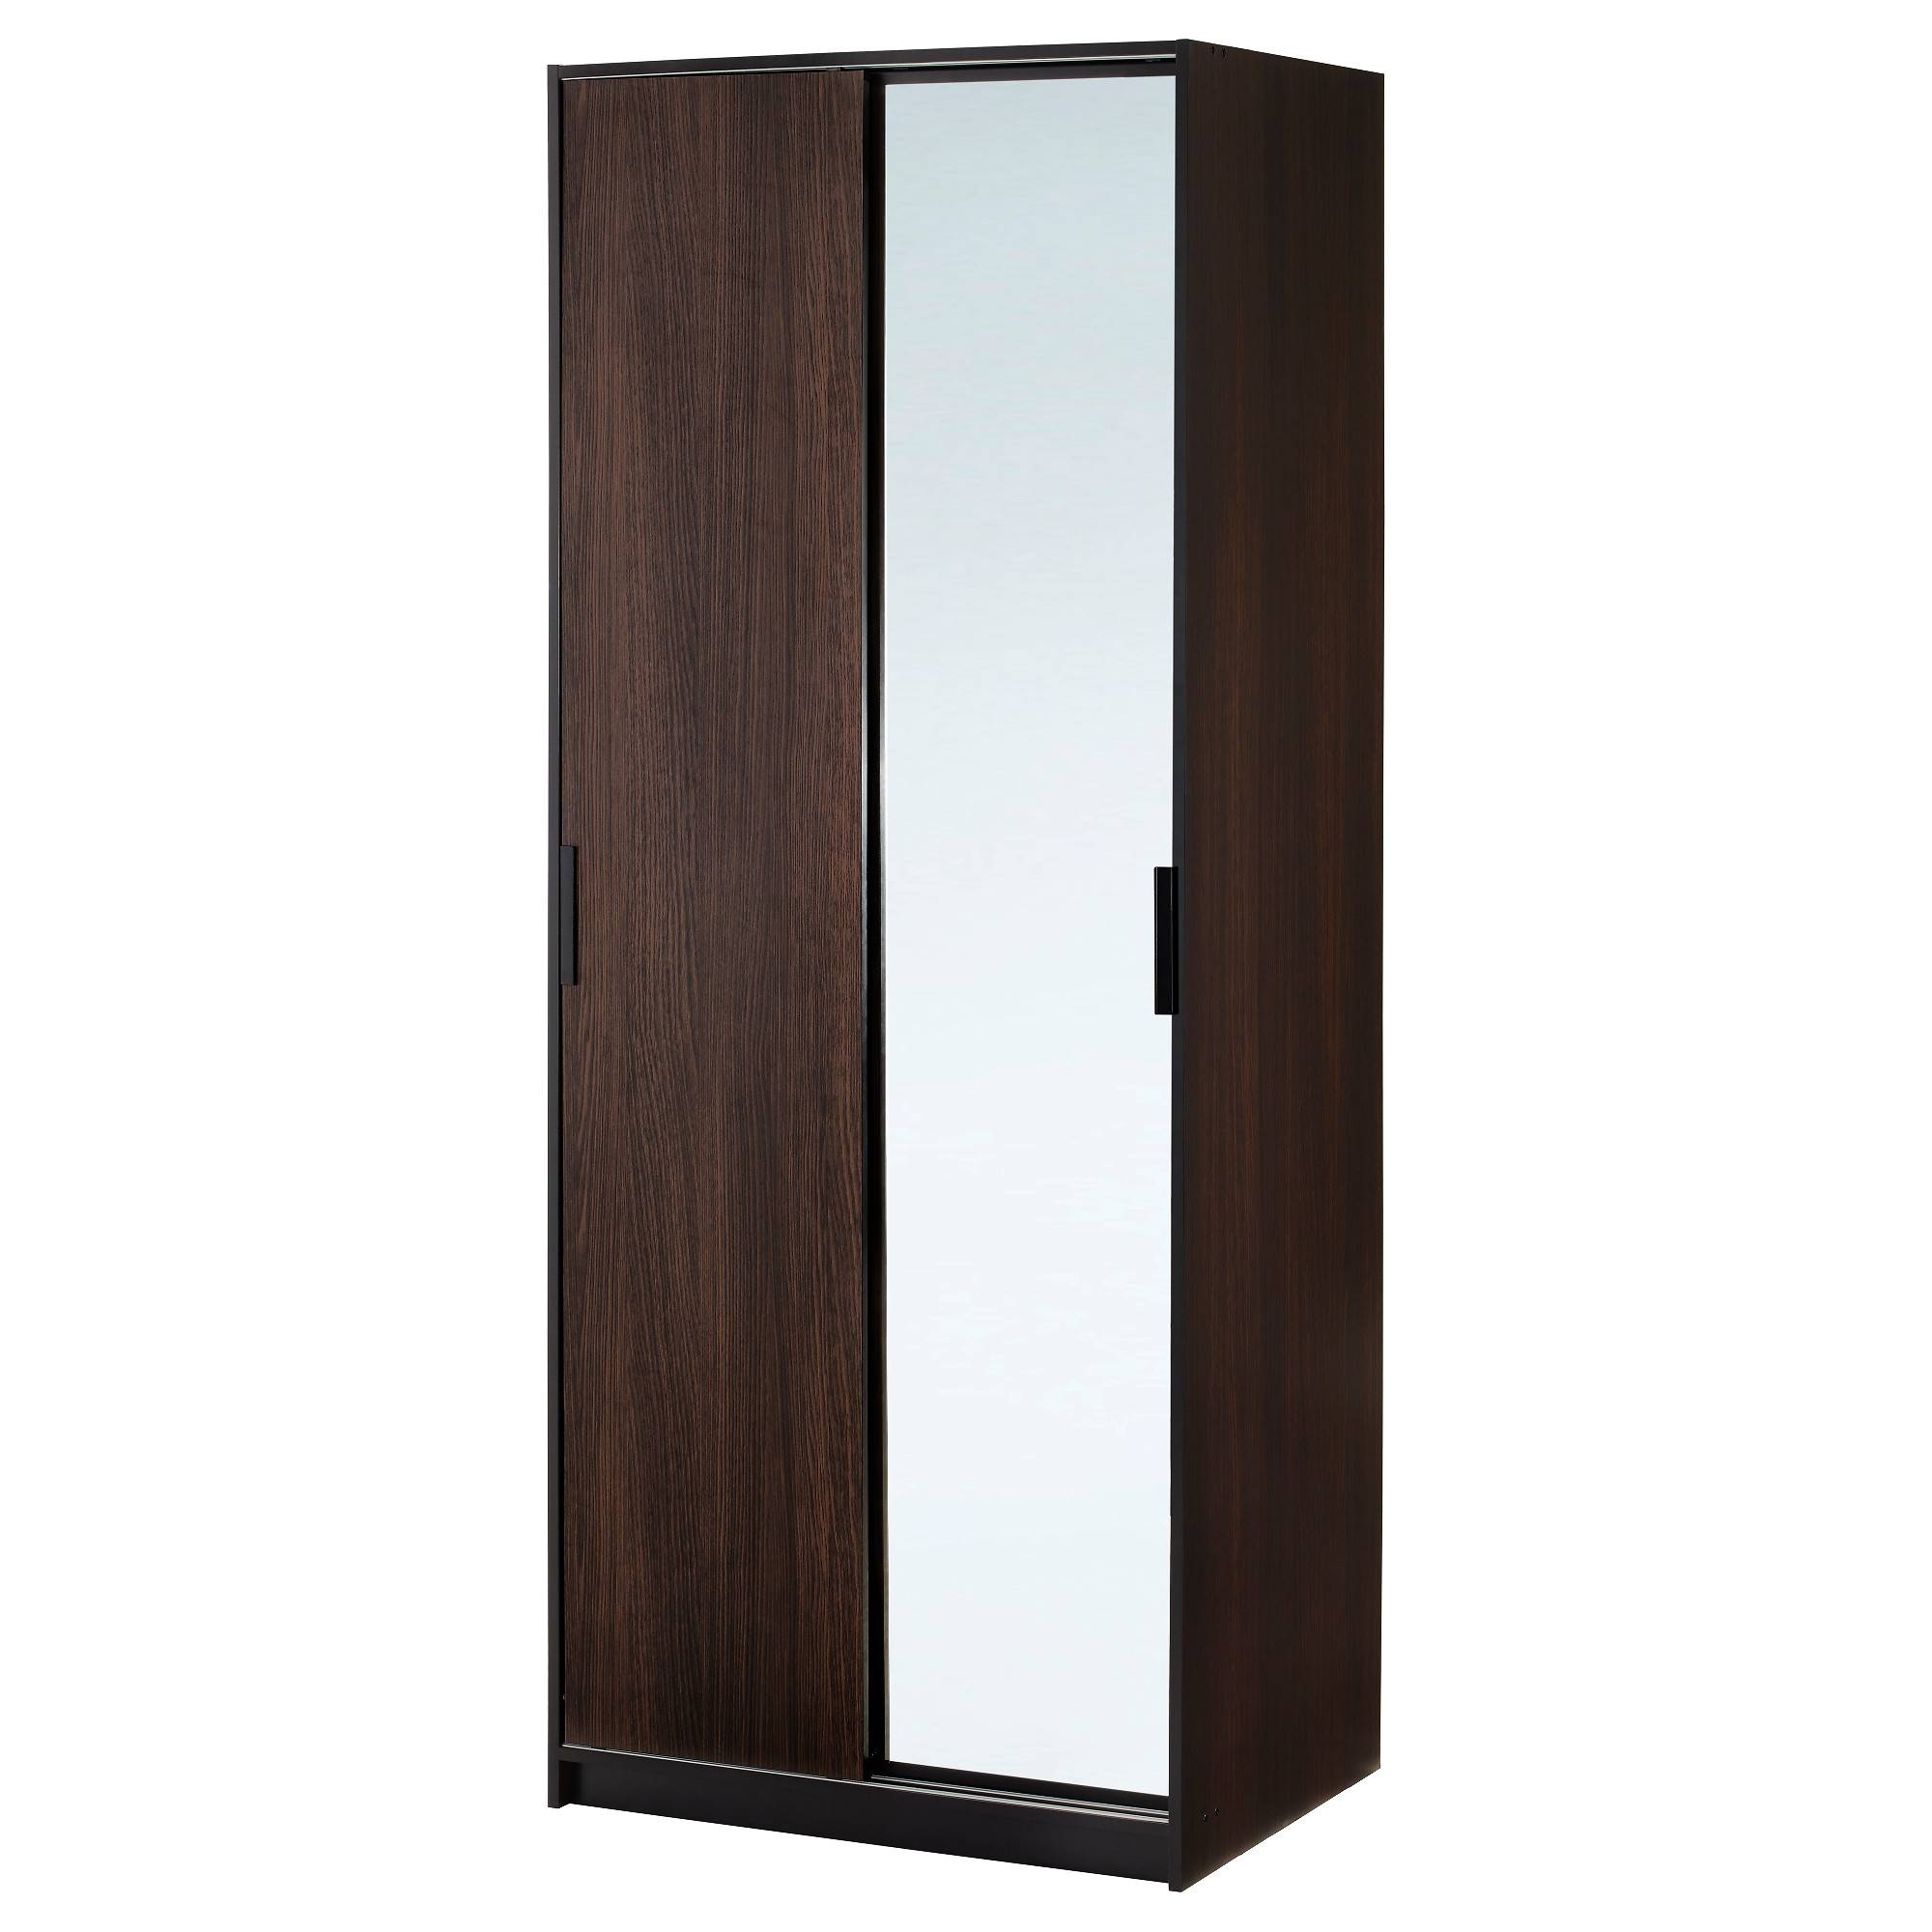 Trysil Wardrobe Dark Brown/mirror Glass 79X61X202 Cm – Ikea Throughout Dark Wood Wardrobe With Mirror (View 24 of 30)